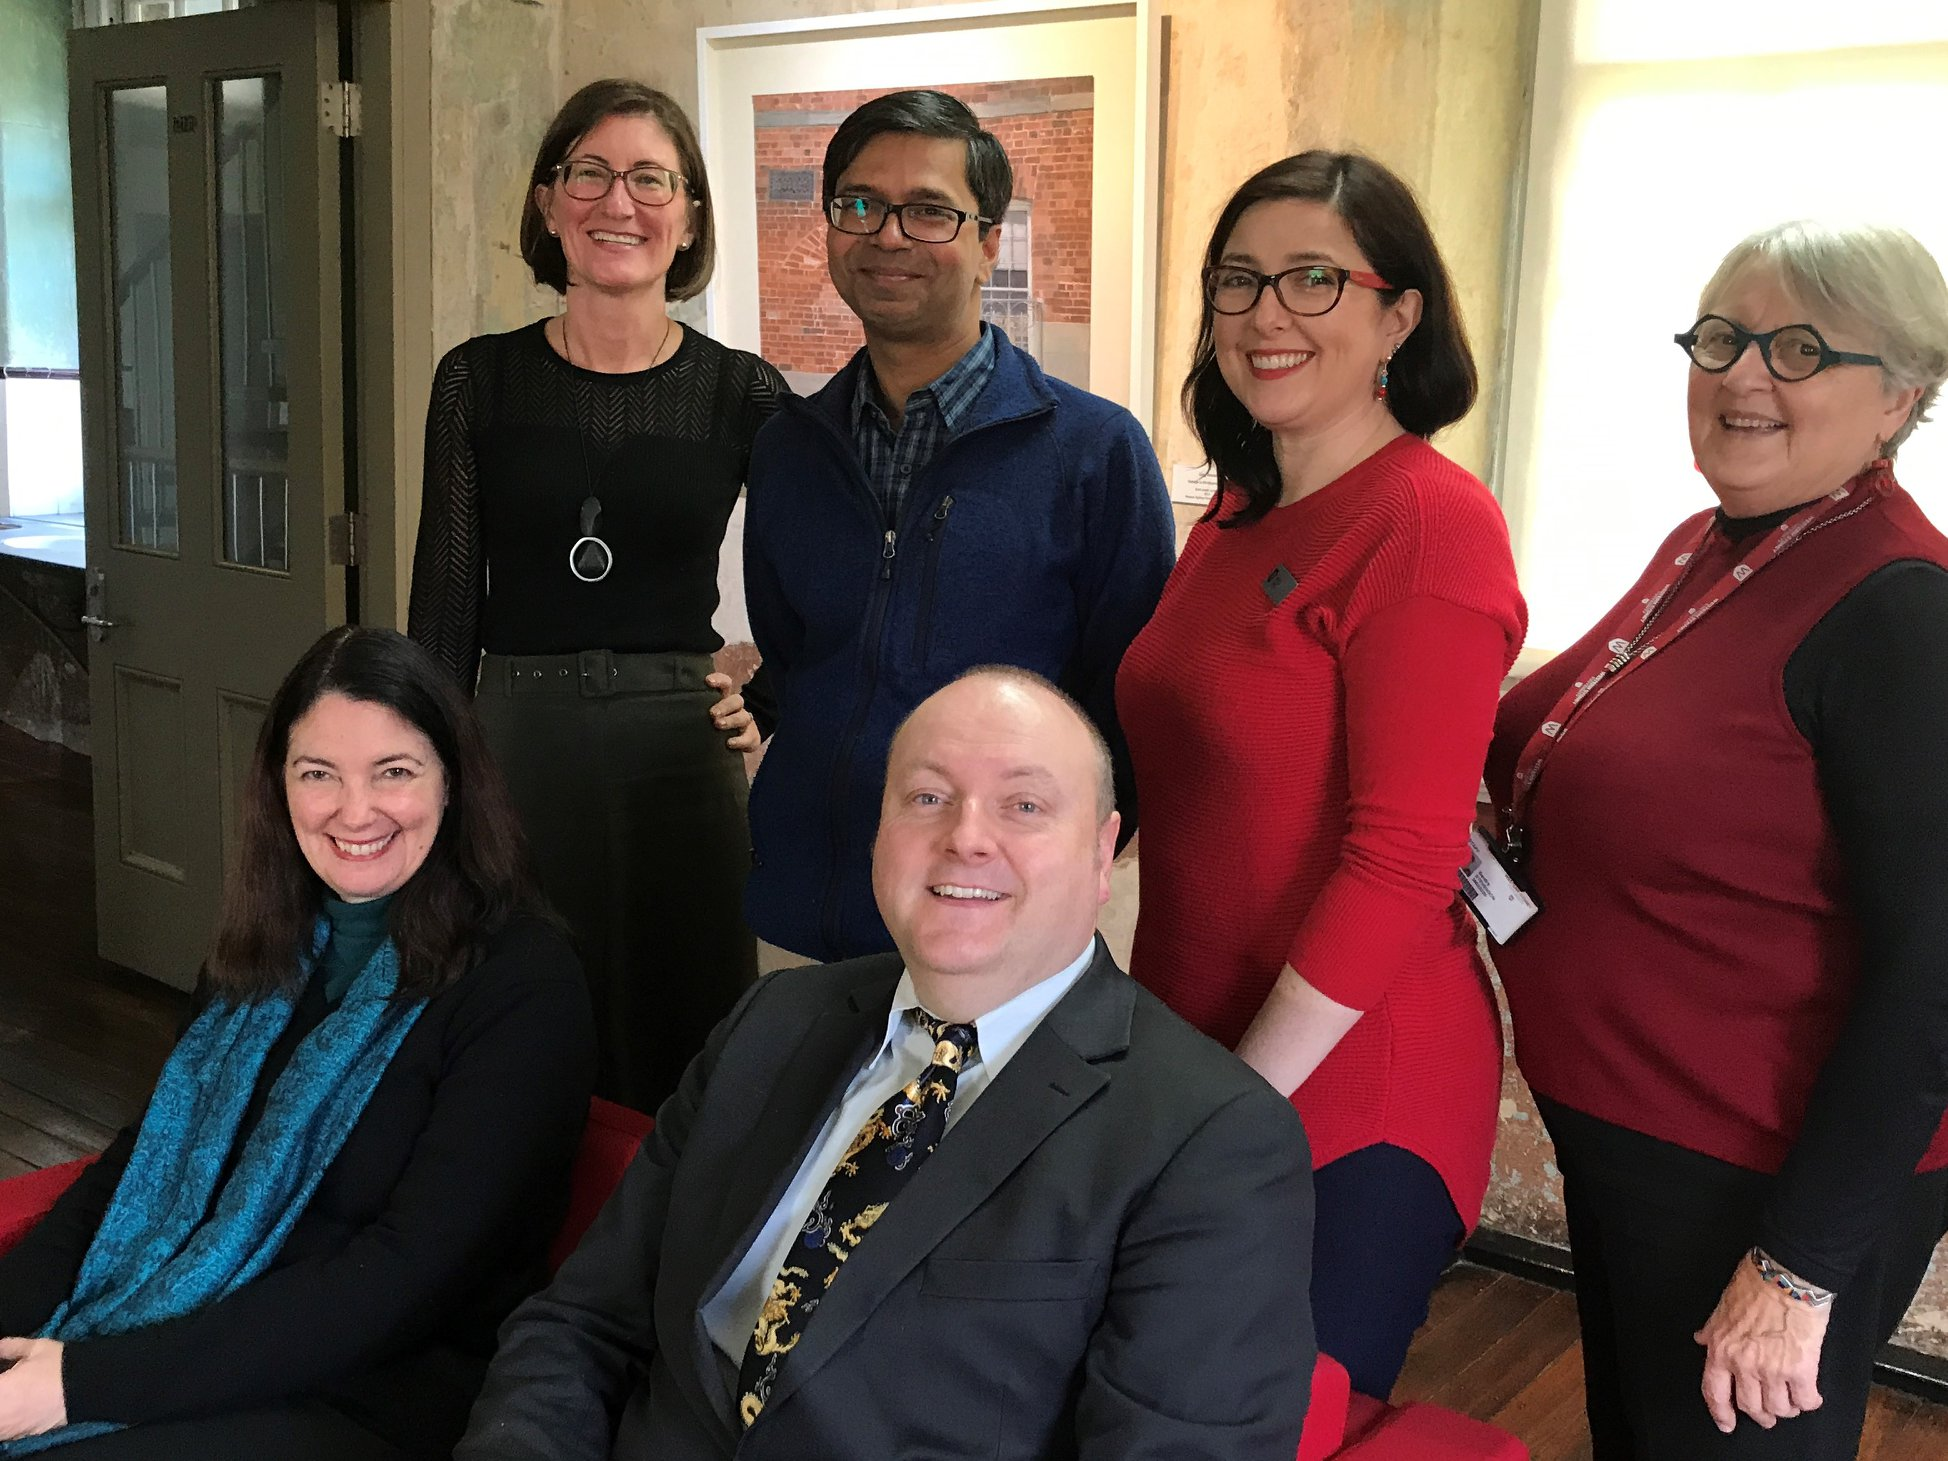 Current E.G.Whitlam Research Fellows Professor du Cross, Dr Henry and Endeavour Fellow Bikram Choudhary meet with Whitlam Institute Staff, 7 June 2018.